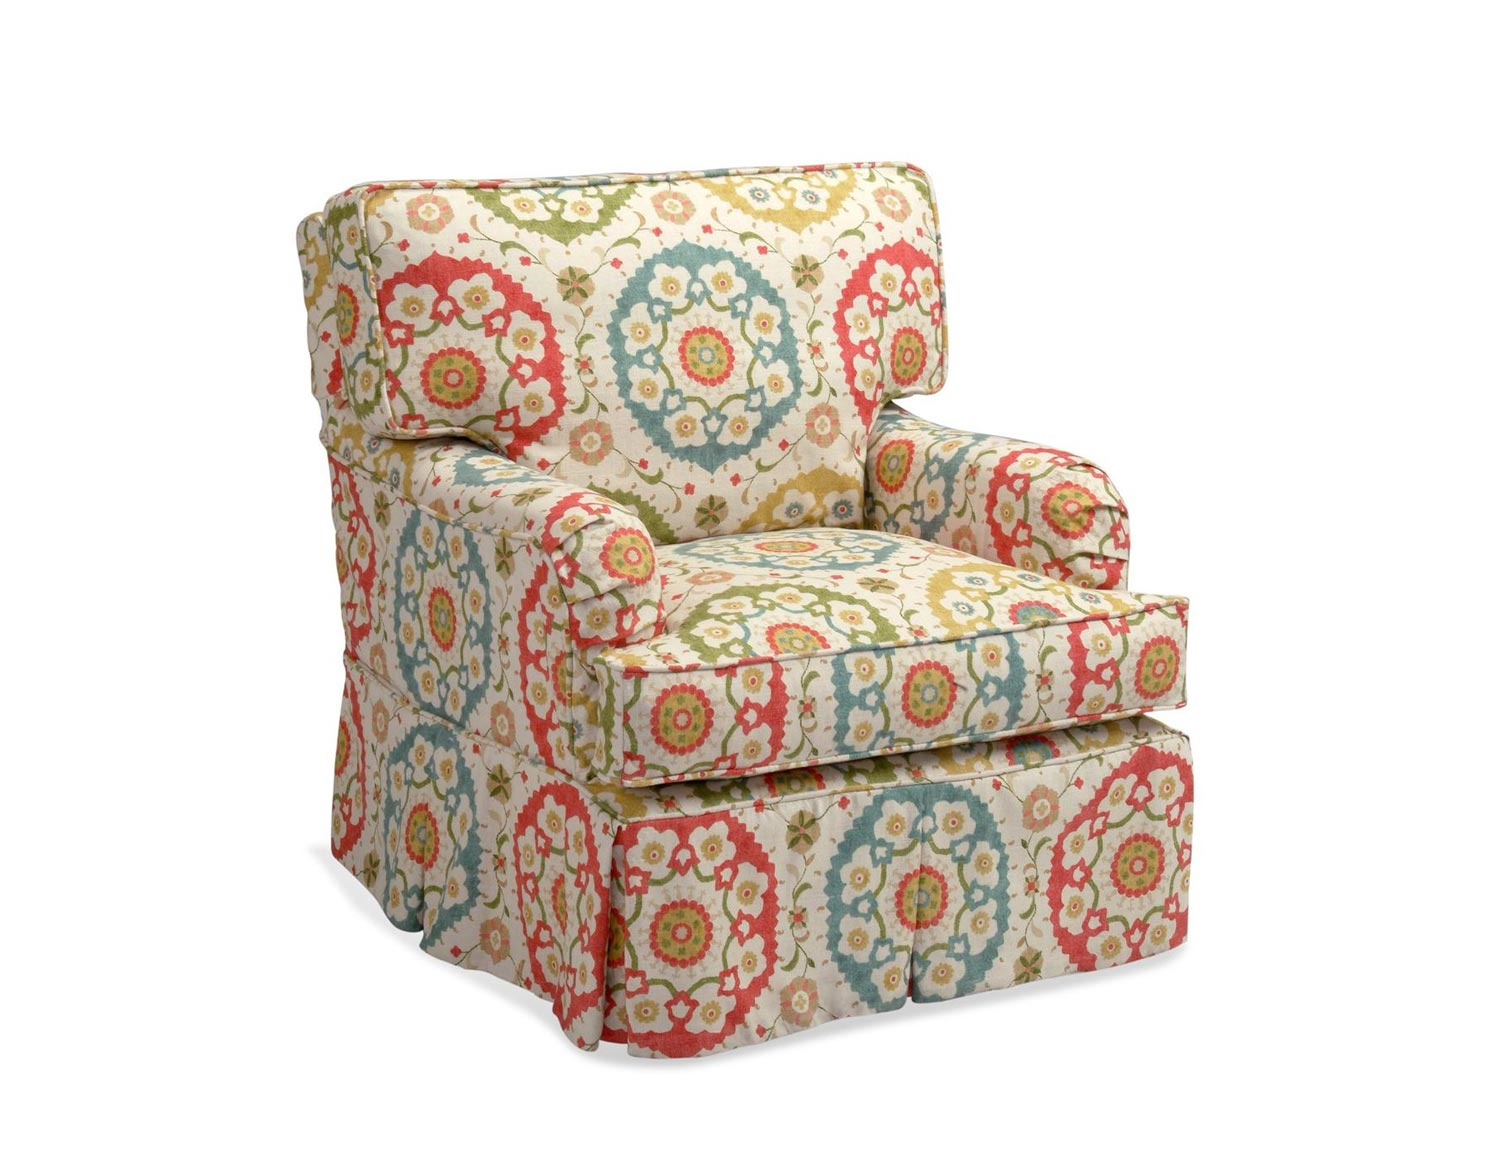 Chelsea Home Kimberly Accent Glider - Cornwall Garden